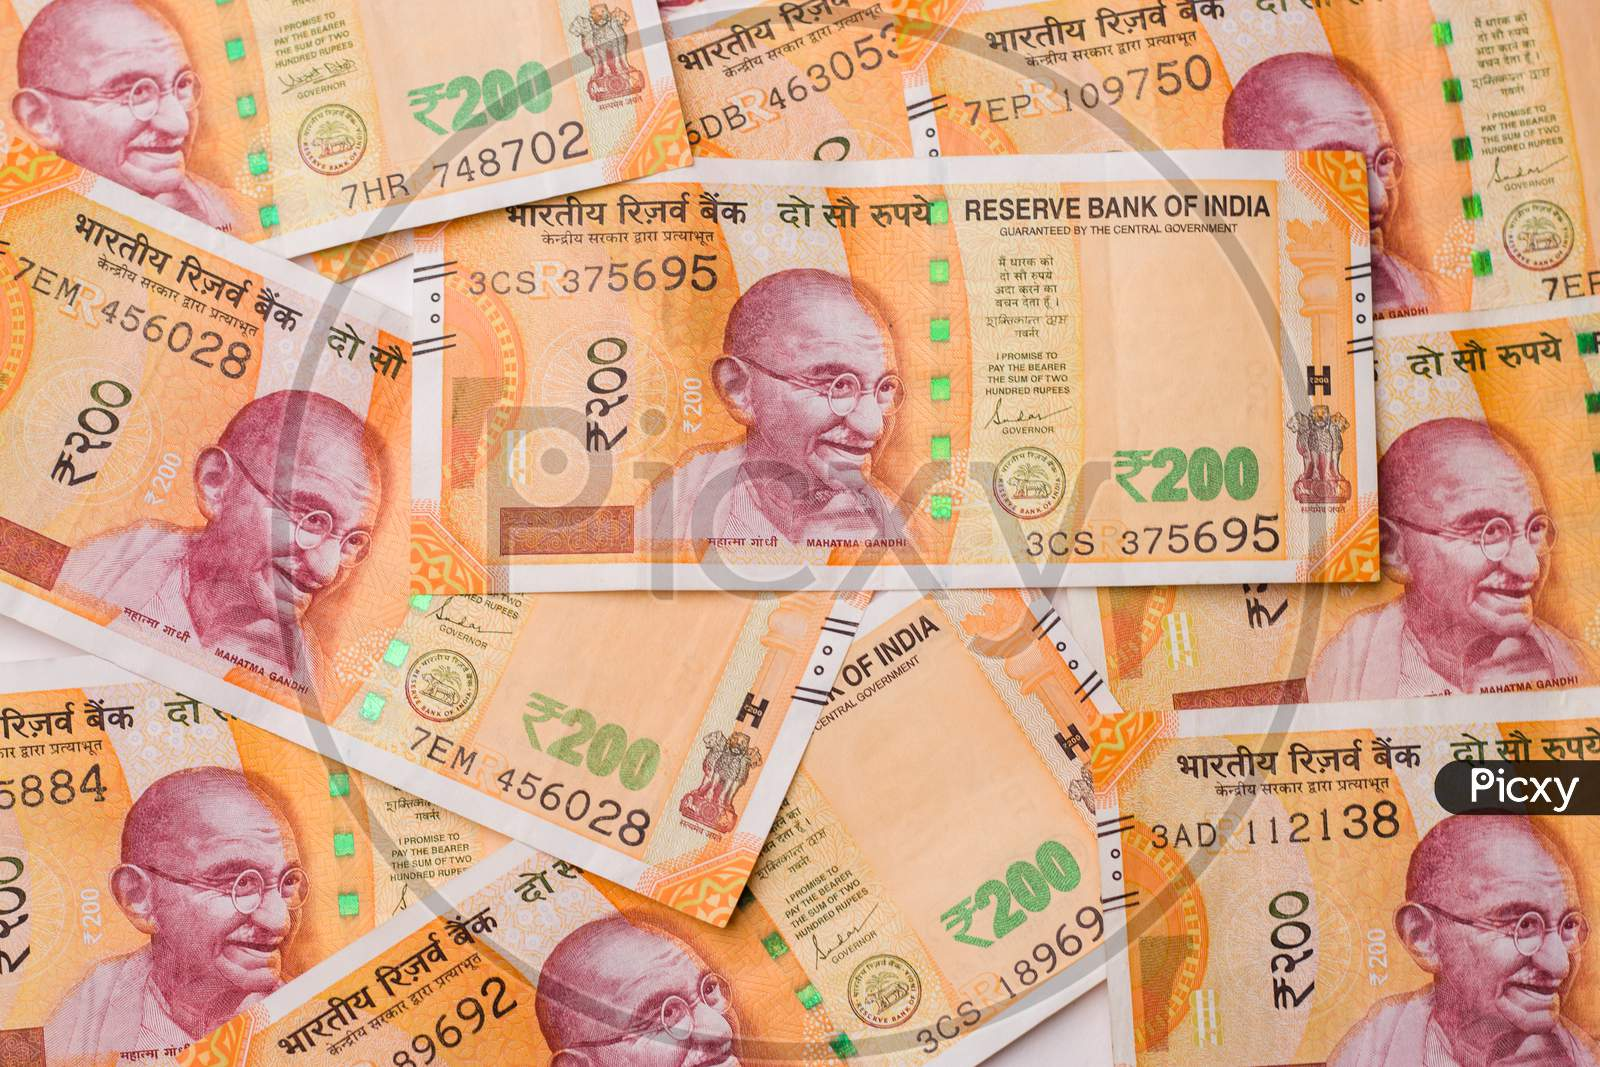 Assam, india - March 30, 2021 : Indian new 200 Rupees note stock image.